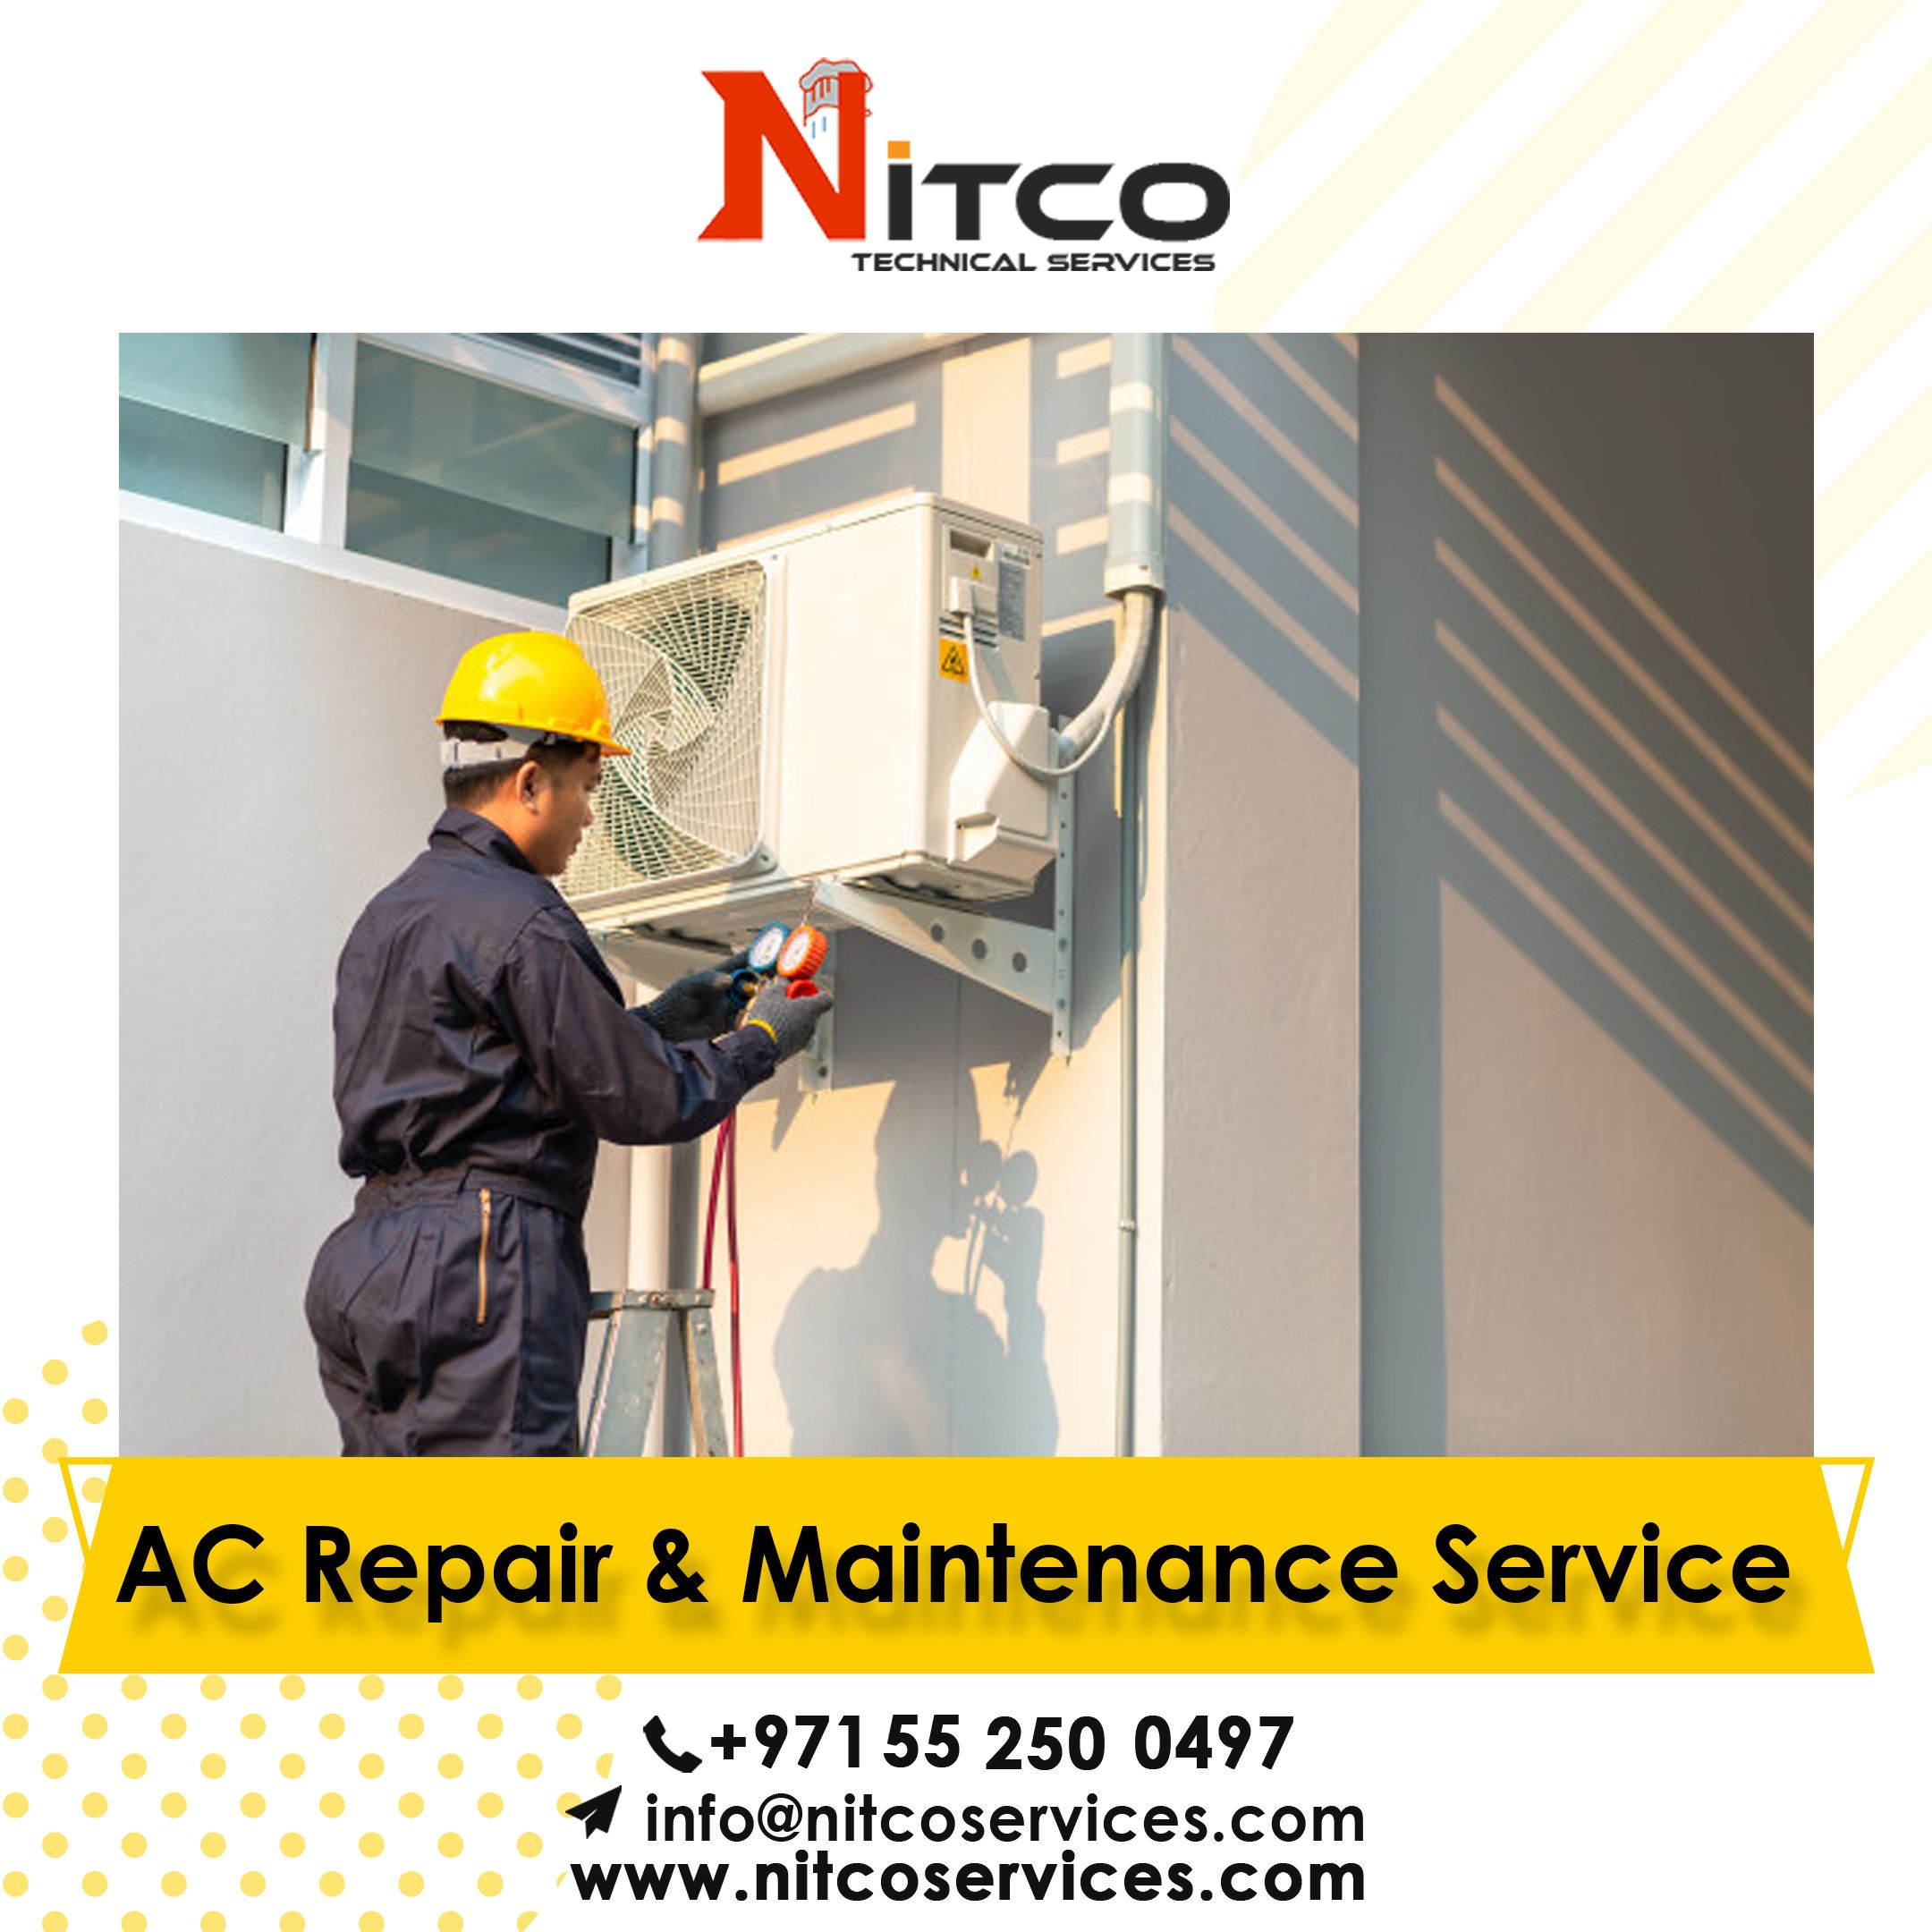 Air Conditioning Services Nitco Technical Services Call Us 055